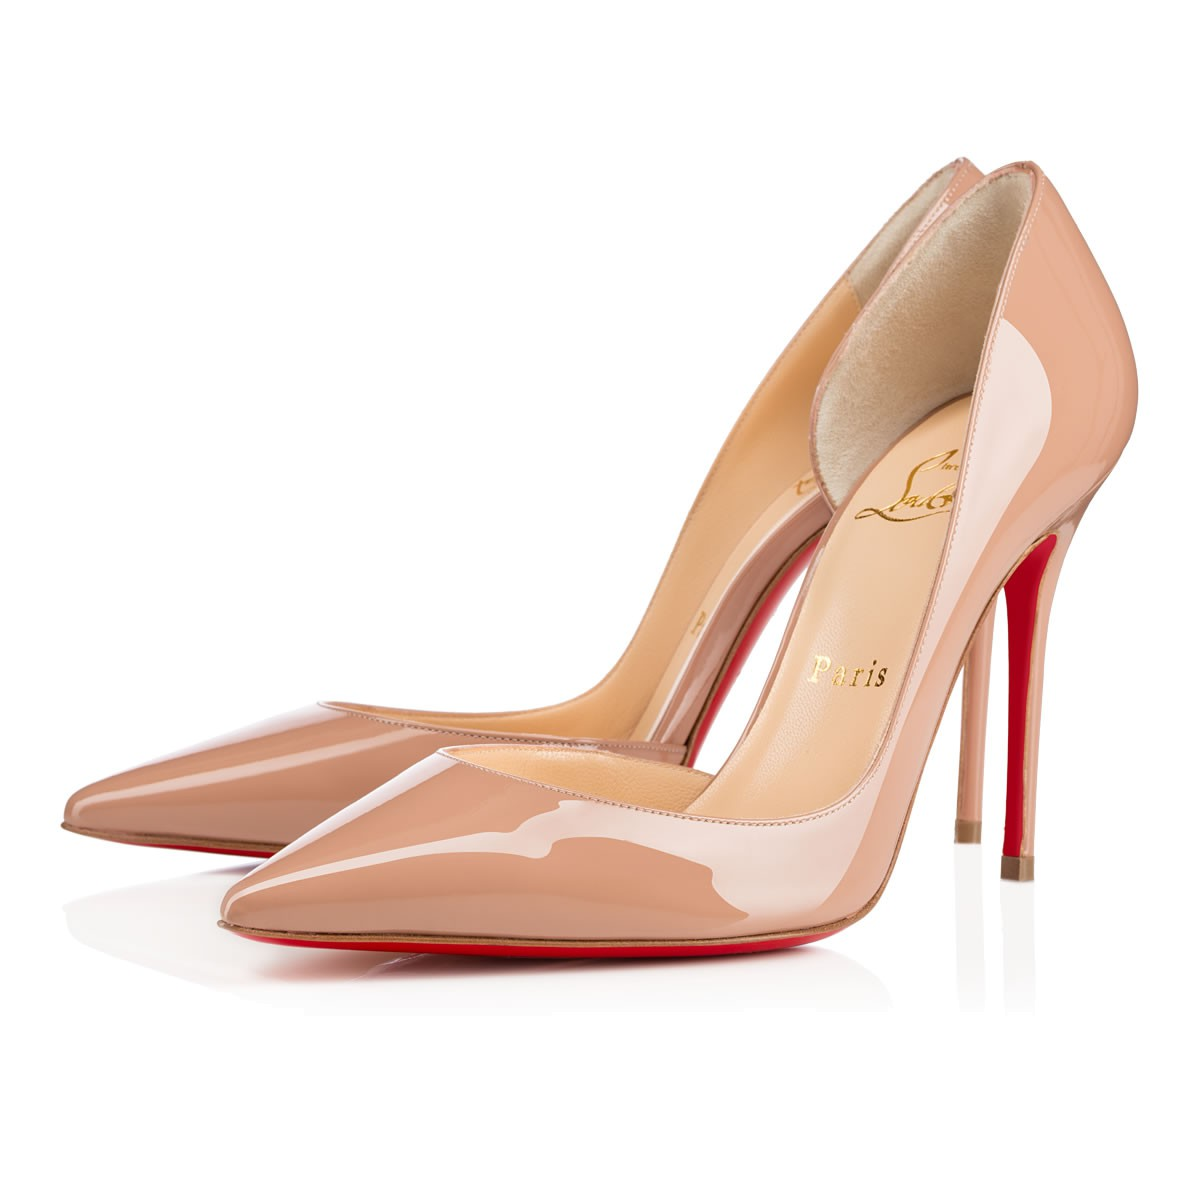 Iriza 100 Nude Patent Leather - Women Shoes - Christian Louboutin da7d1a2e468f